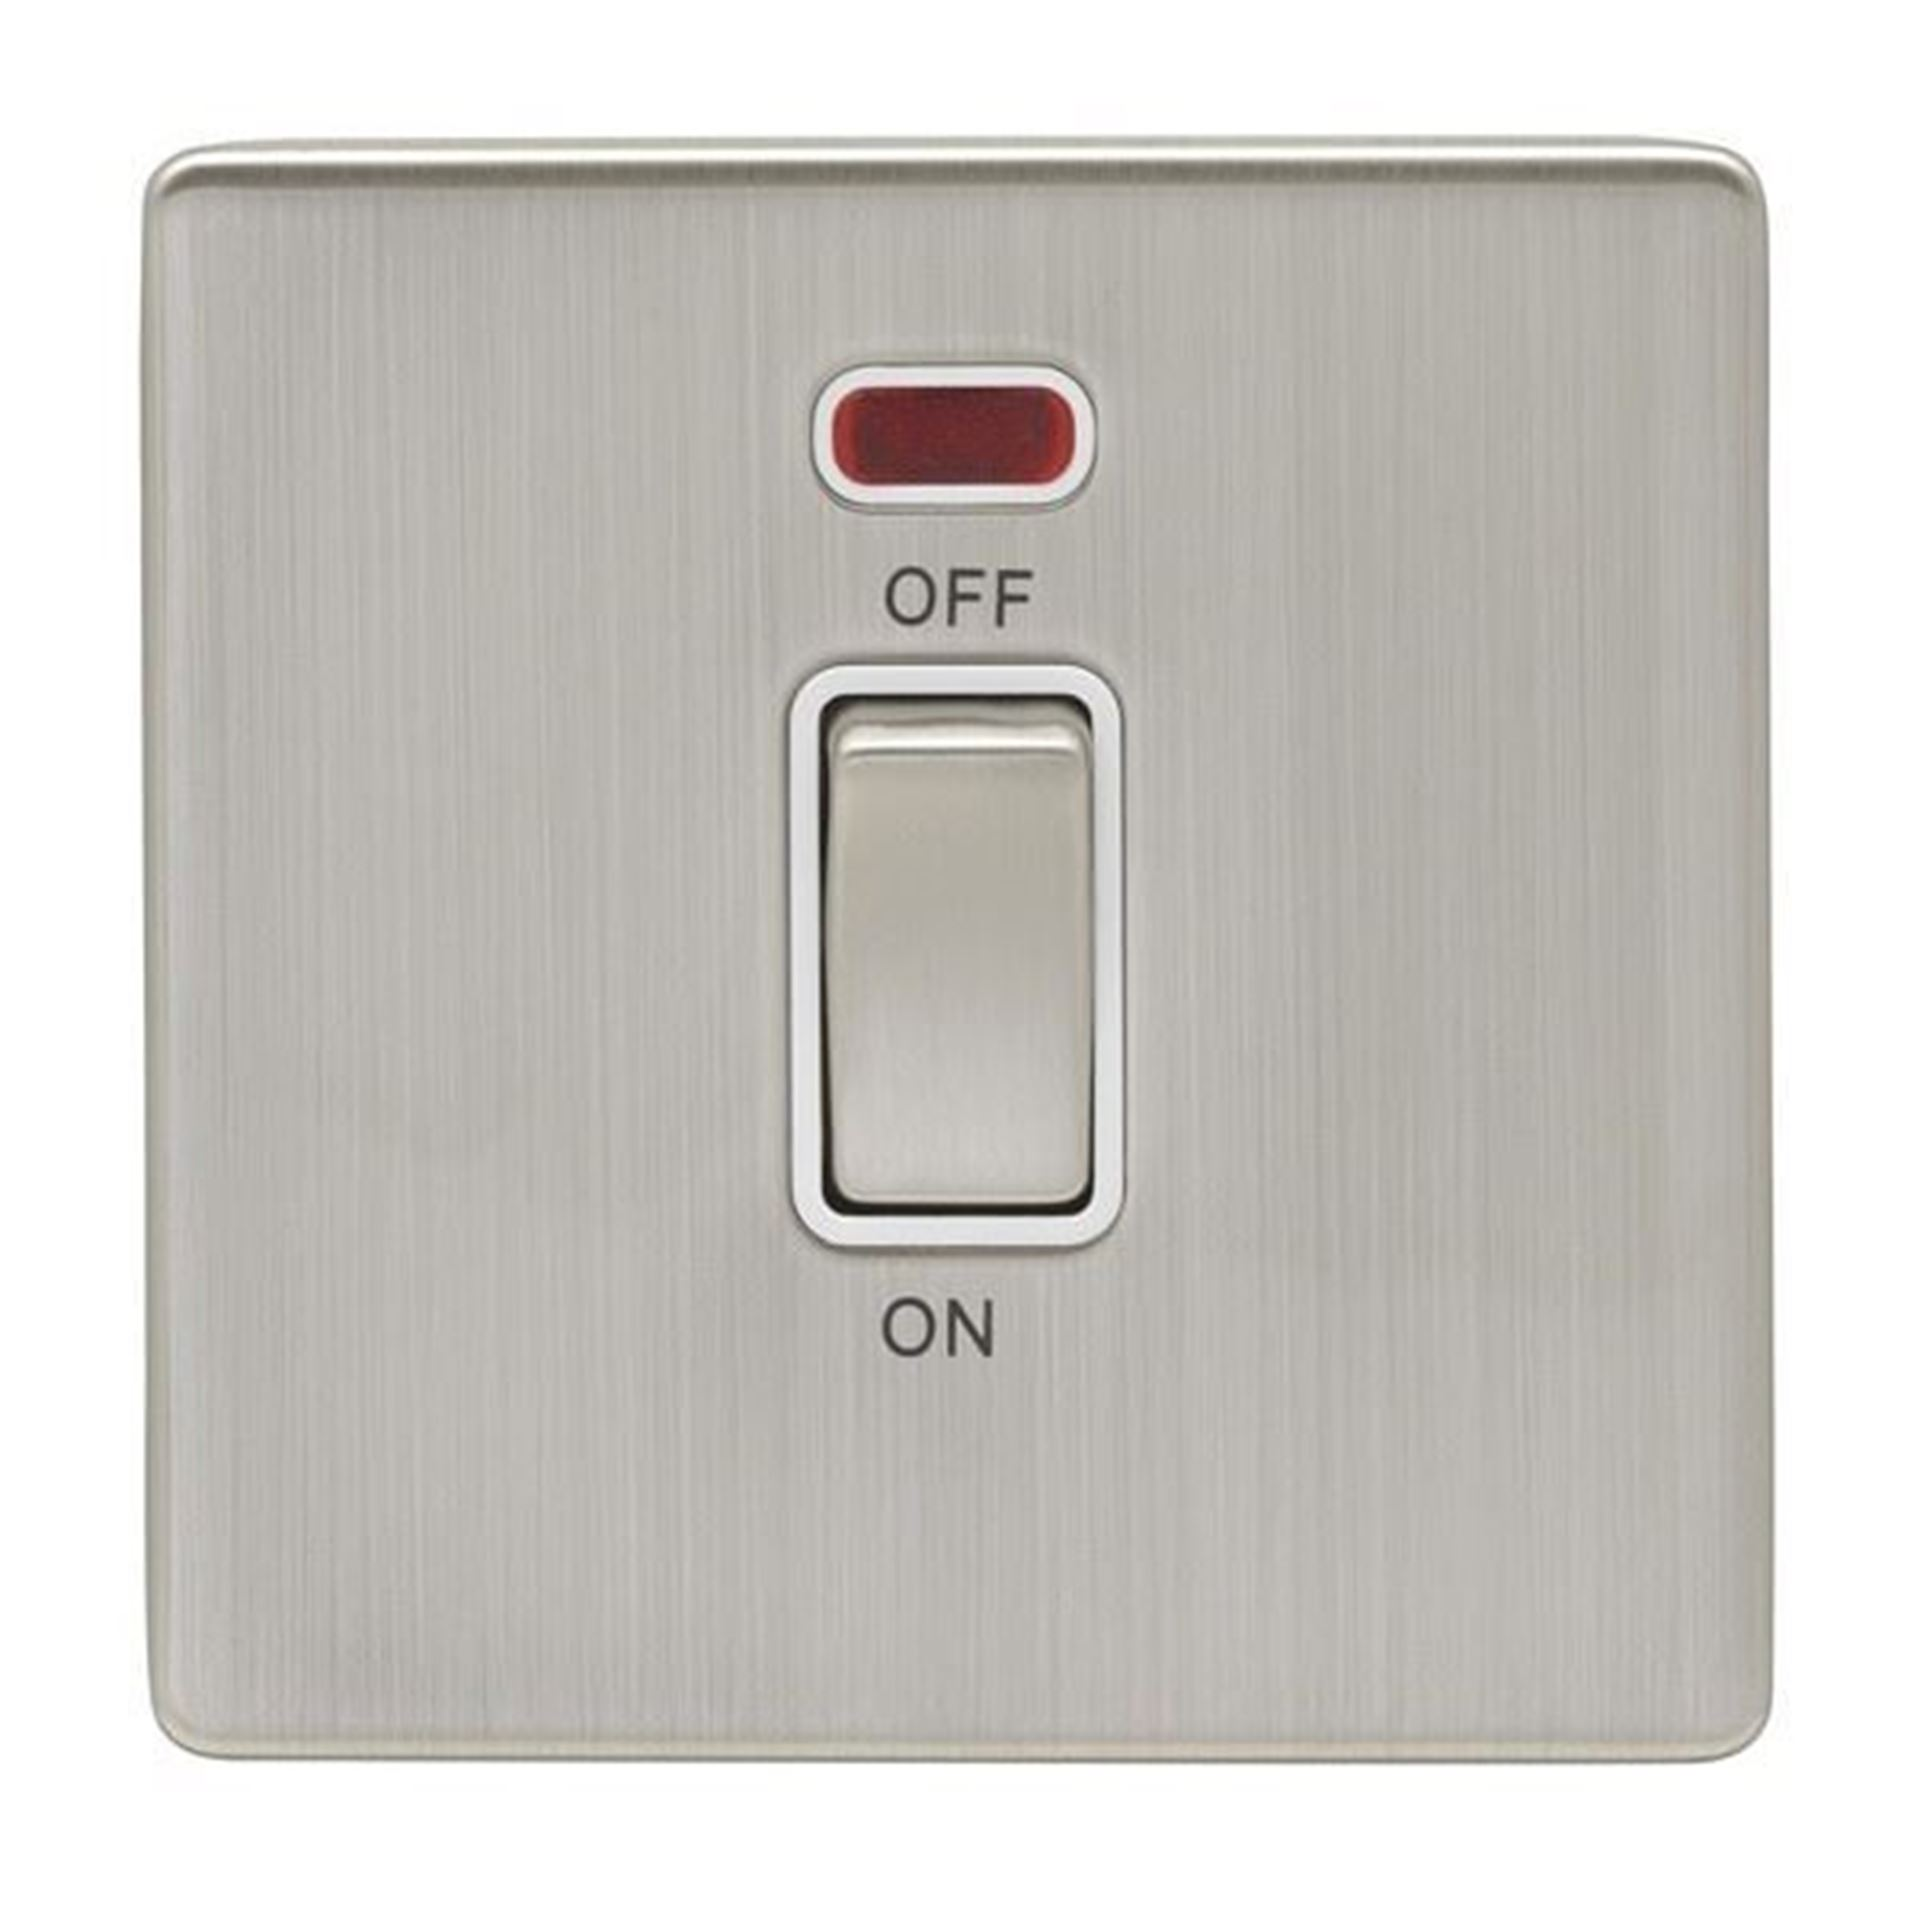 Eurolite 45Amp DP Cooker Switch With Neon Double Concealed Satin Nickel Plate Matching Rocker White Trim ECSN45ASWN SNW